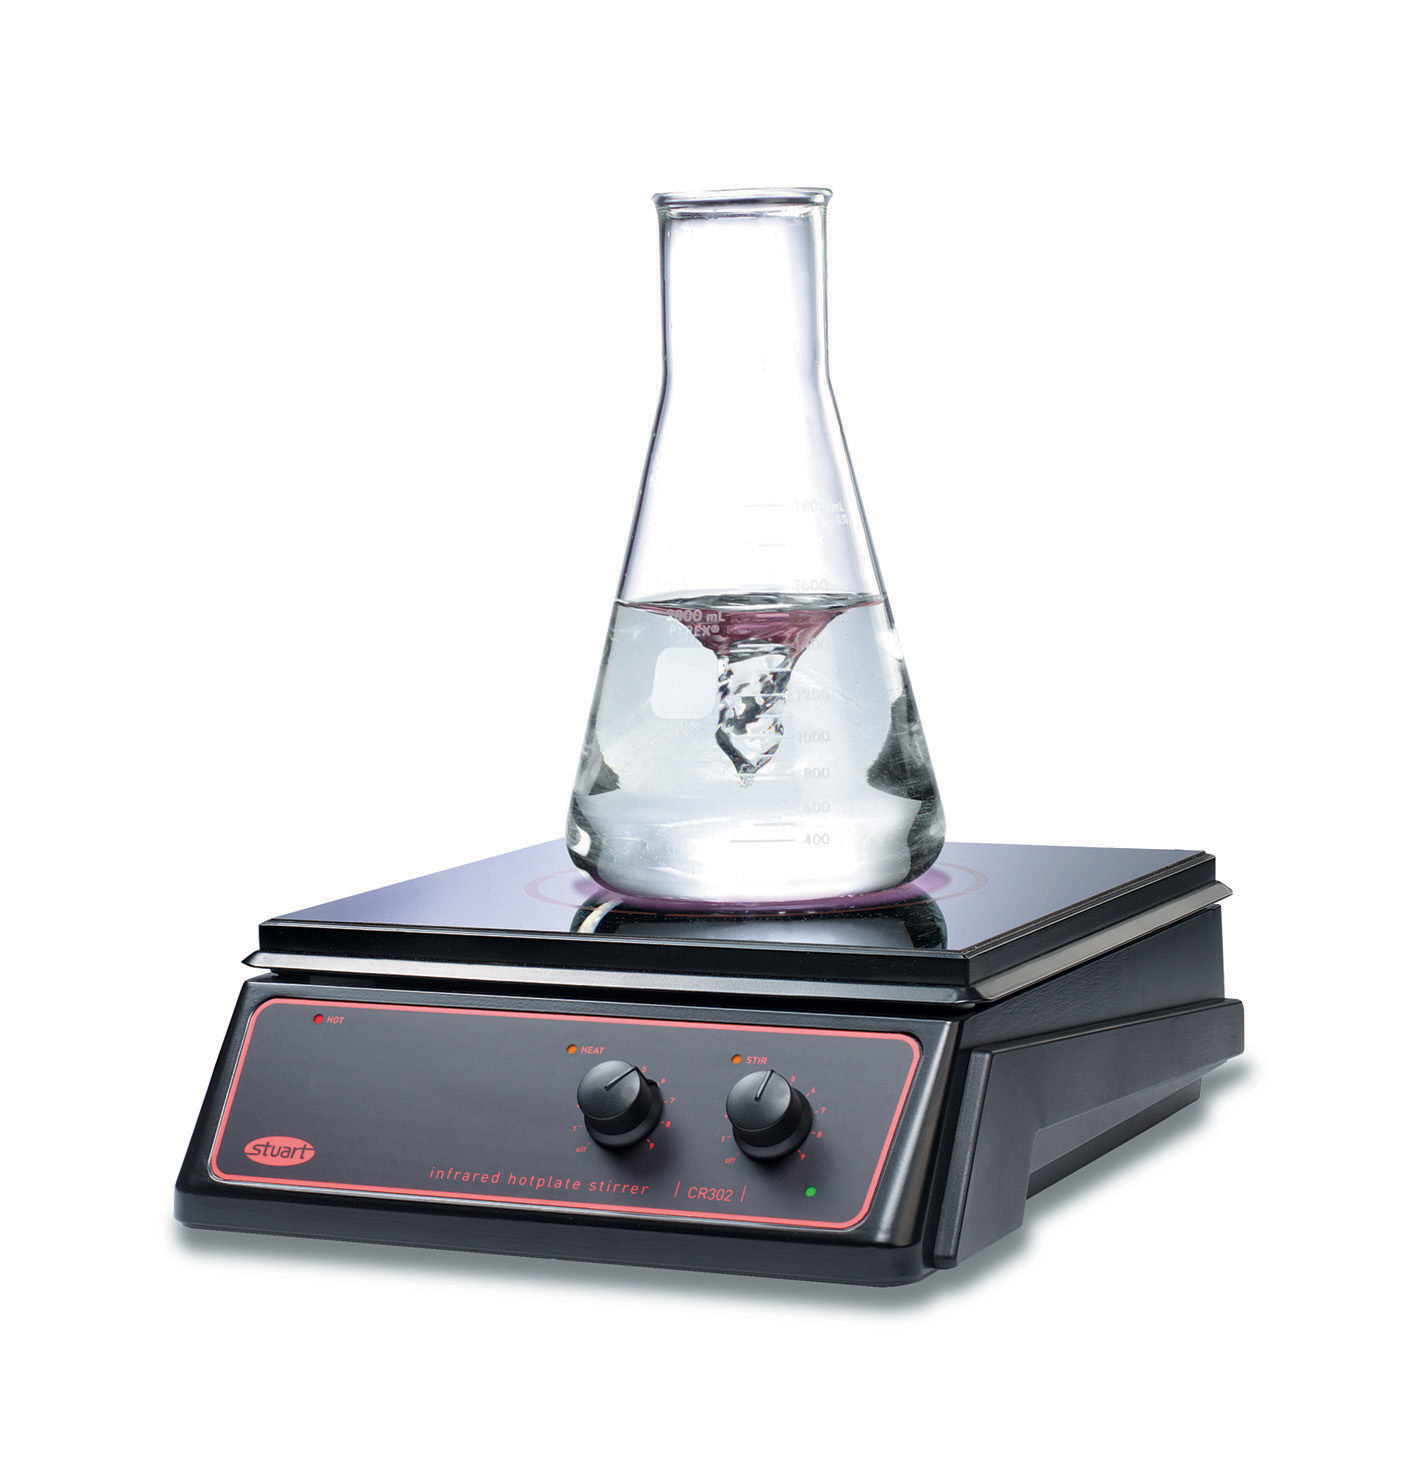 bibby scientific cr302 magnetic stirrer. Black Bedroom Furniture Sets. Home Design Ideas